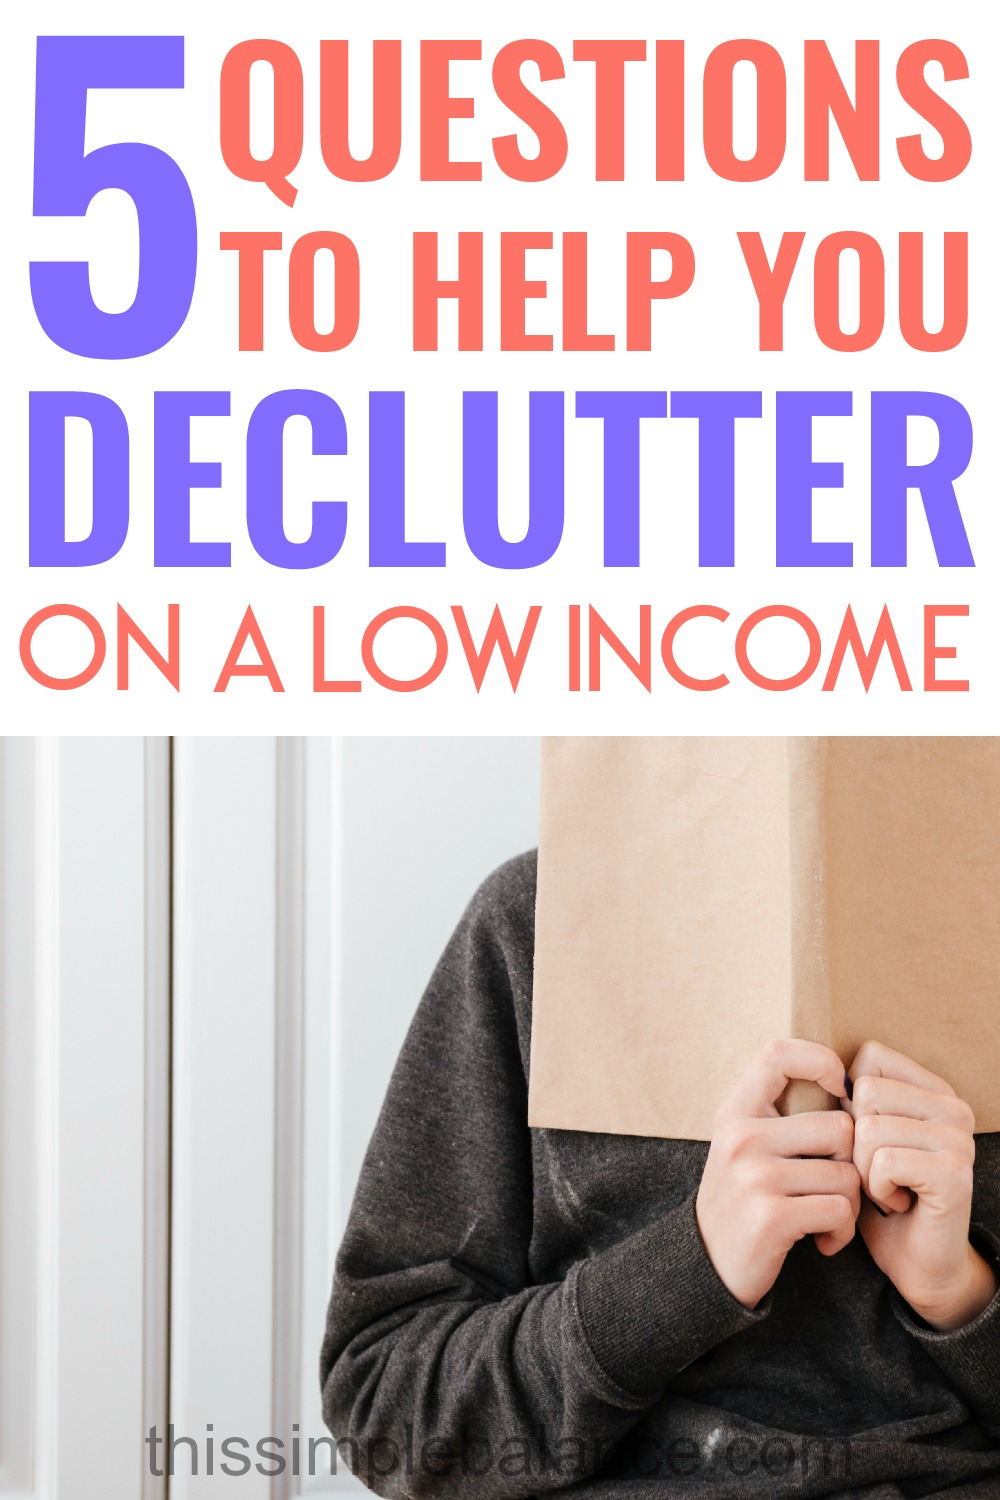 "Decluttering on a low income: 5 questions to use instead of ""Does it spark joy?"" #decluttering #organization #minimalism #minimalismonalowincome #minimalist"